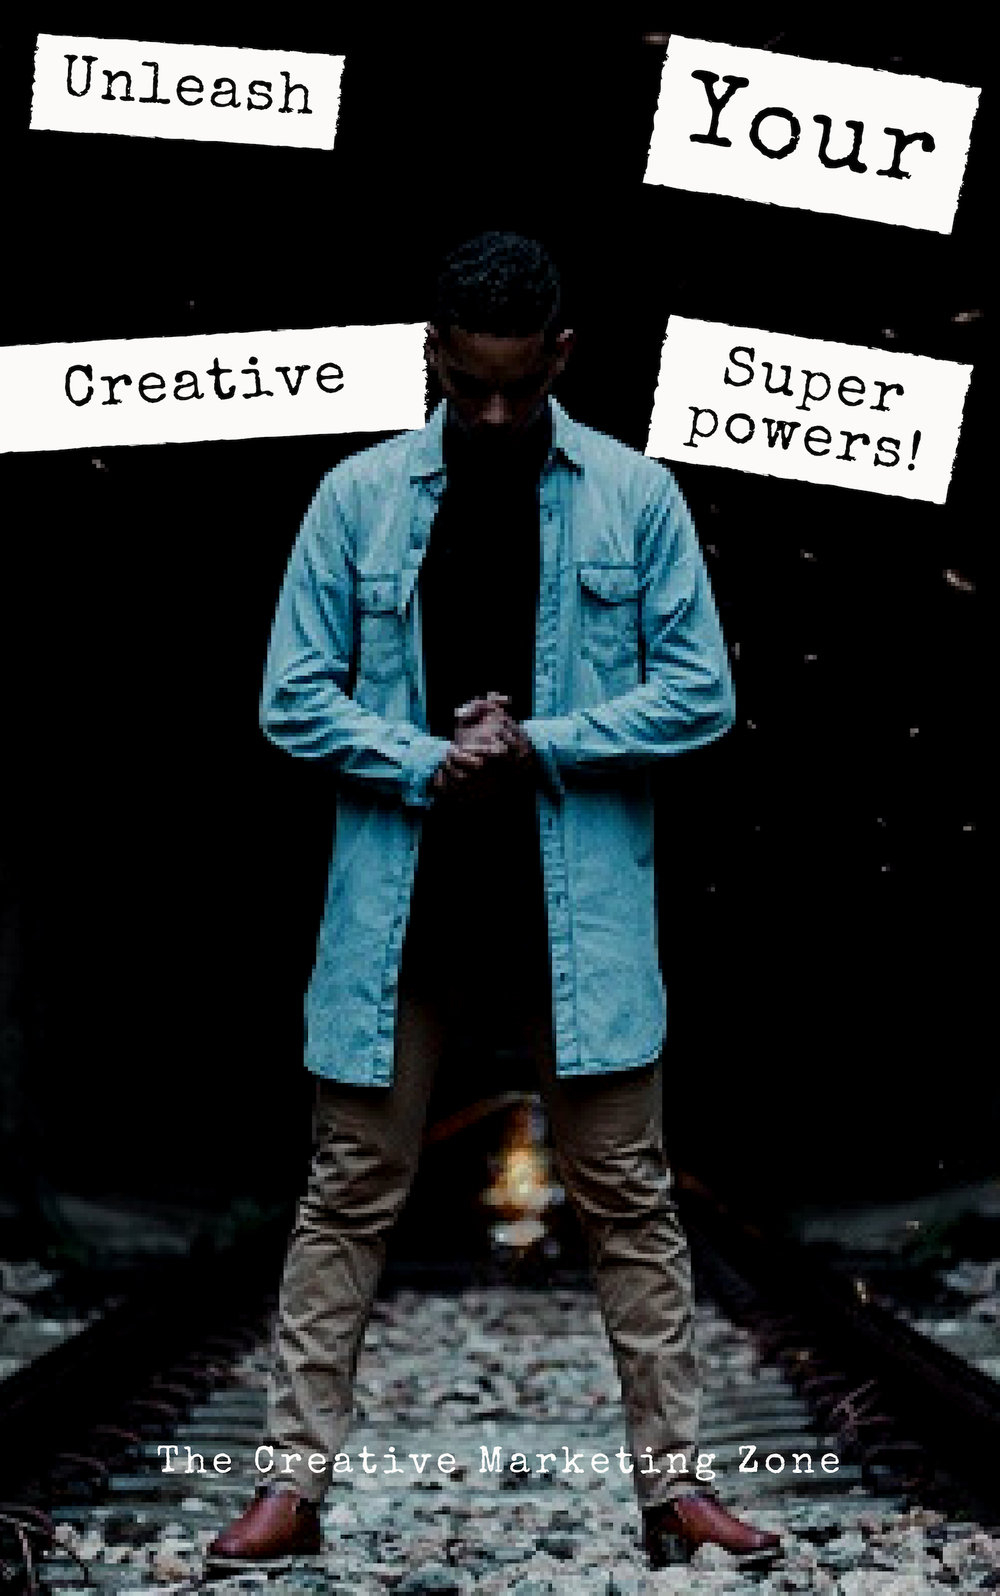 Discover and Unleash Your Creative Superpowers! - You were born with creative talents and the world is ready for them. Hop on a free creative session with me to help you tap into your creative superpowers today!